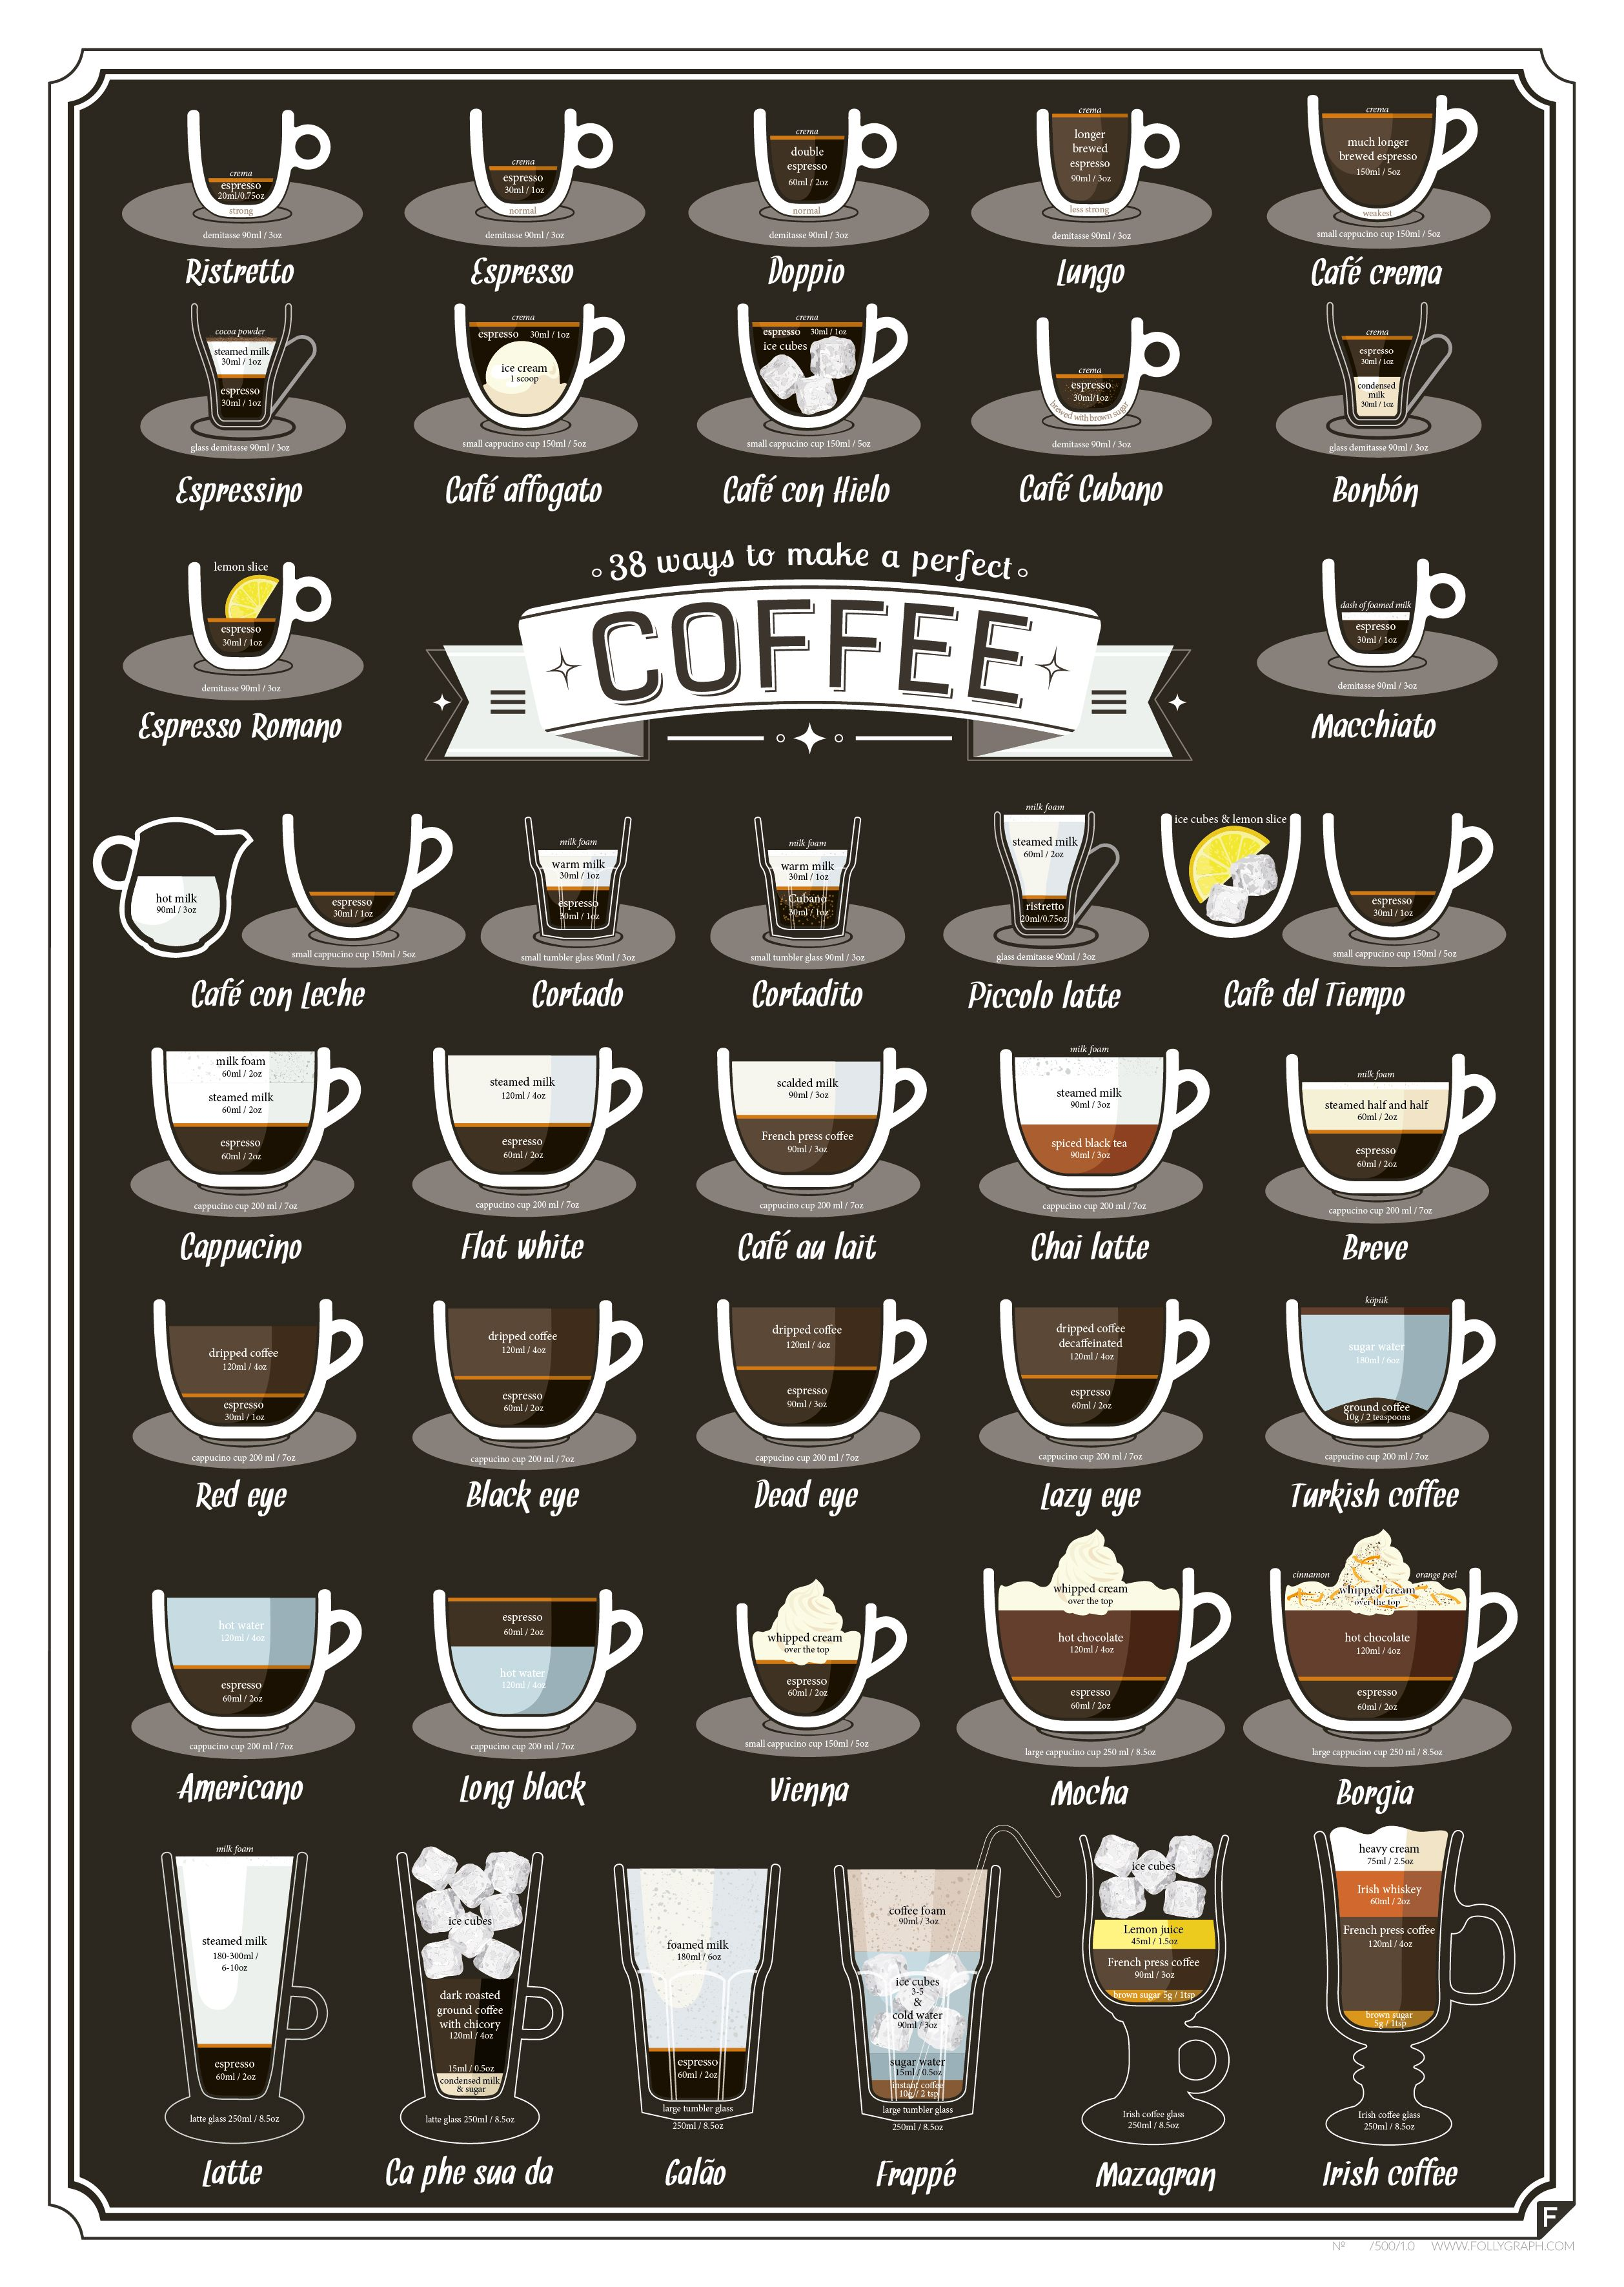 38 different ways to make coffee coffee recipes drink How to make coffee with a coffee maker